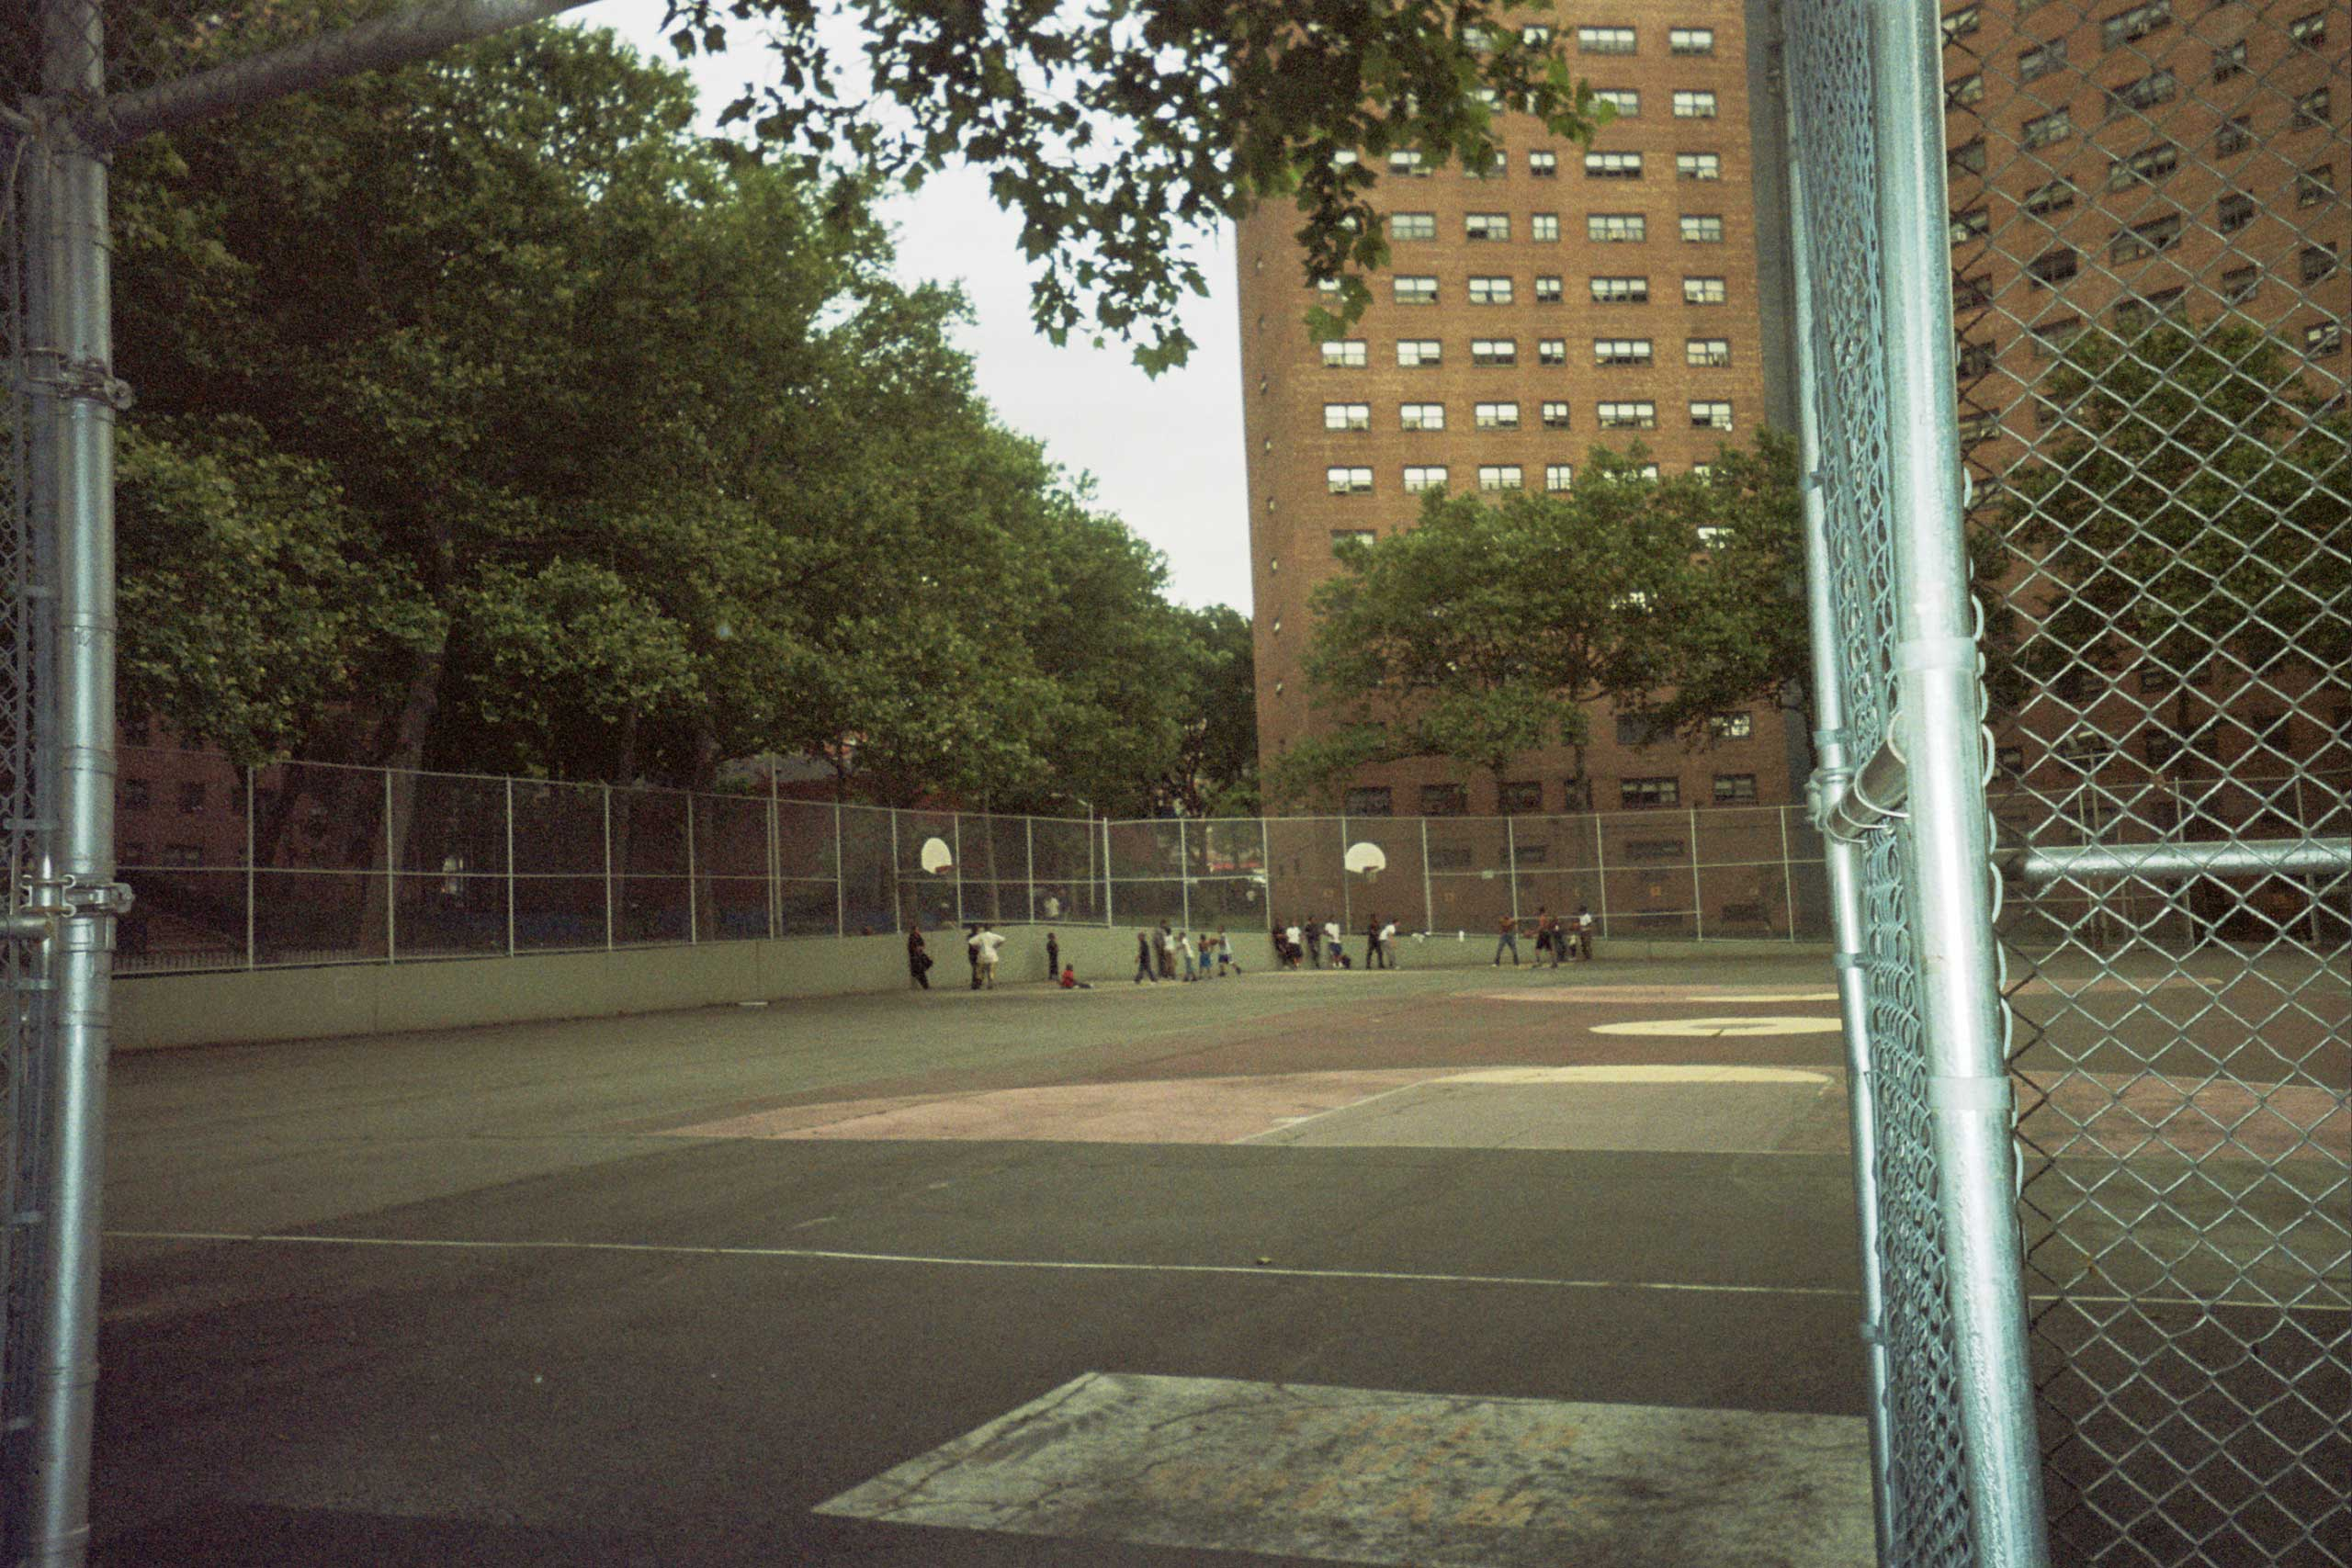 Remember when the ball field was a dust bowl? Now paved, kids love to play basketball.